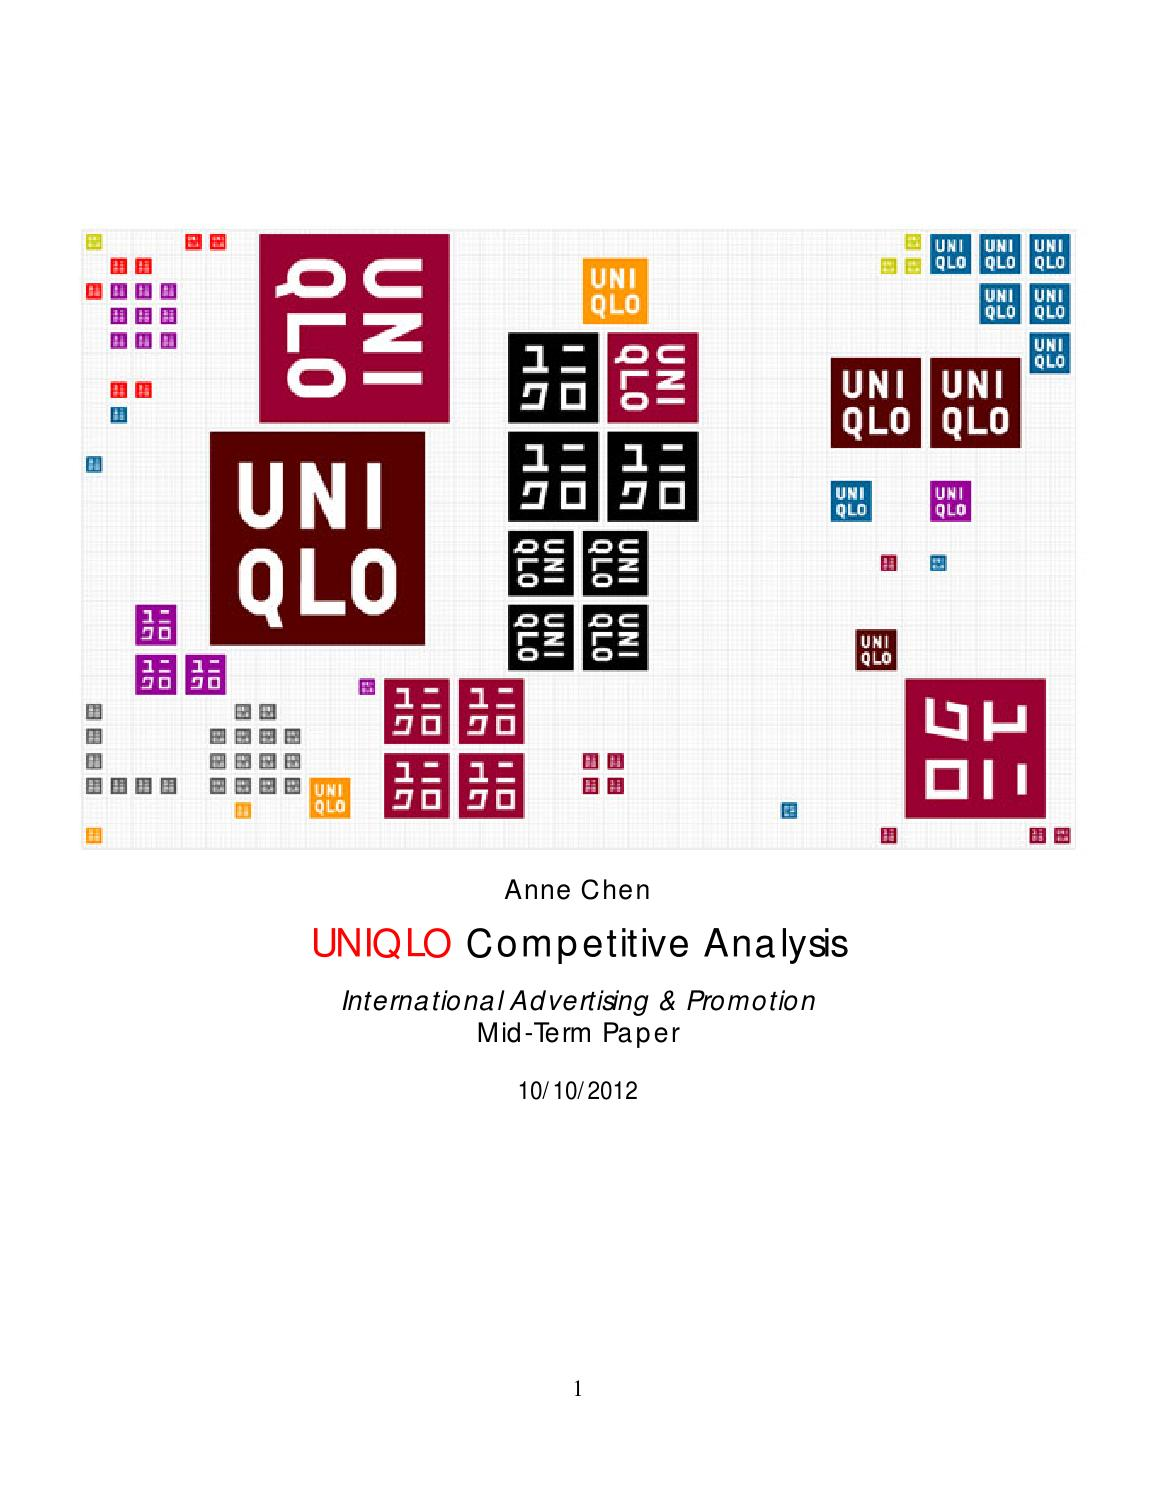 strategic initiative uniqlo by nicole drain  uniqlo competitive analysis